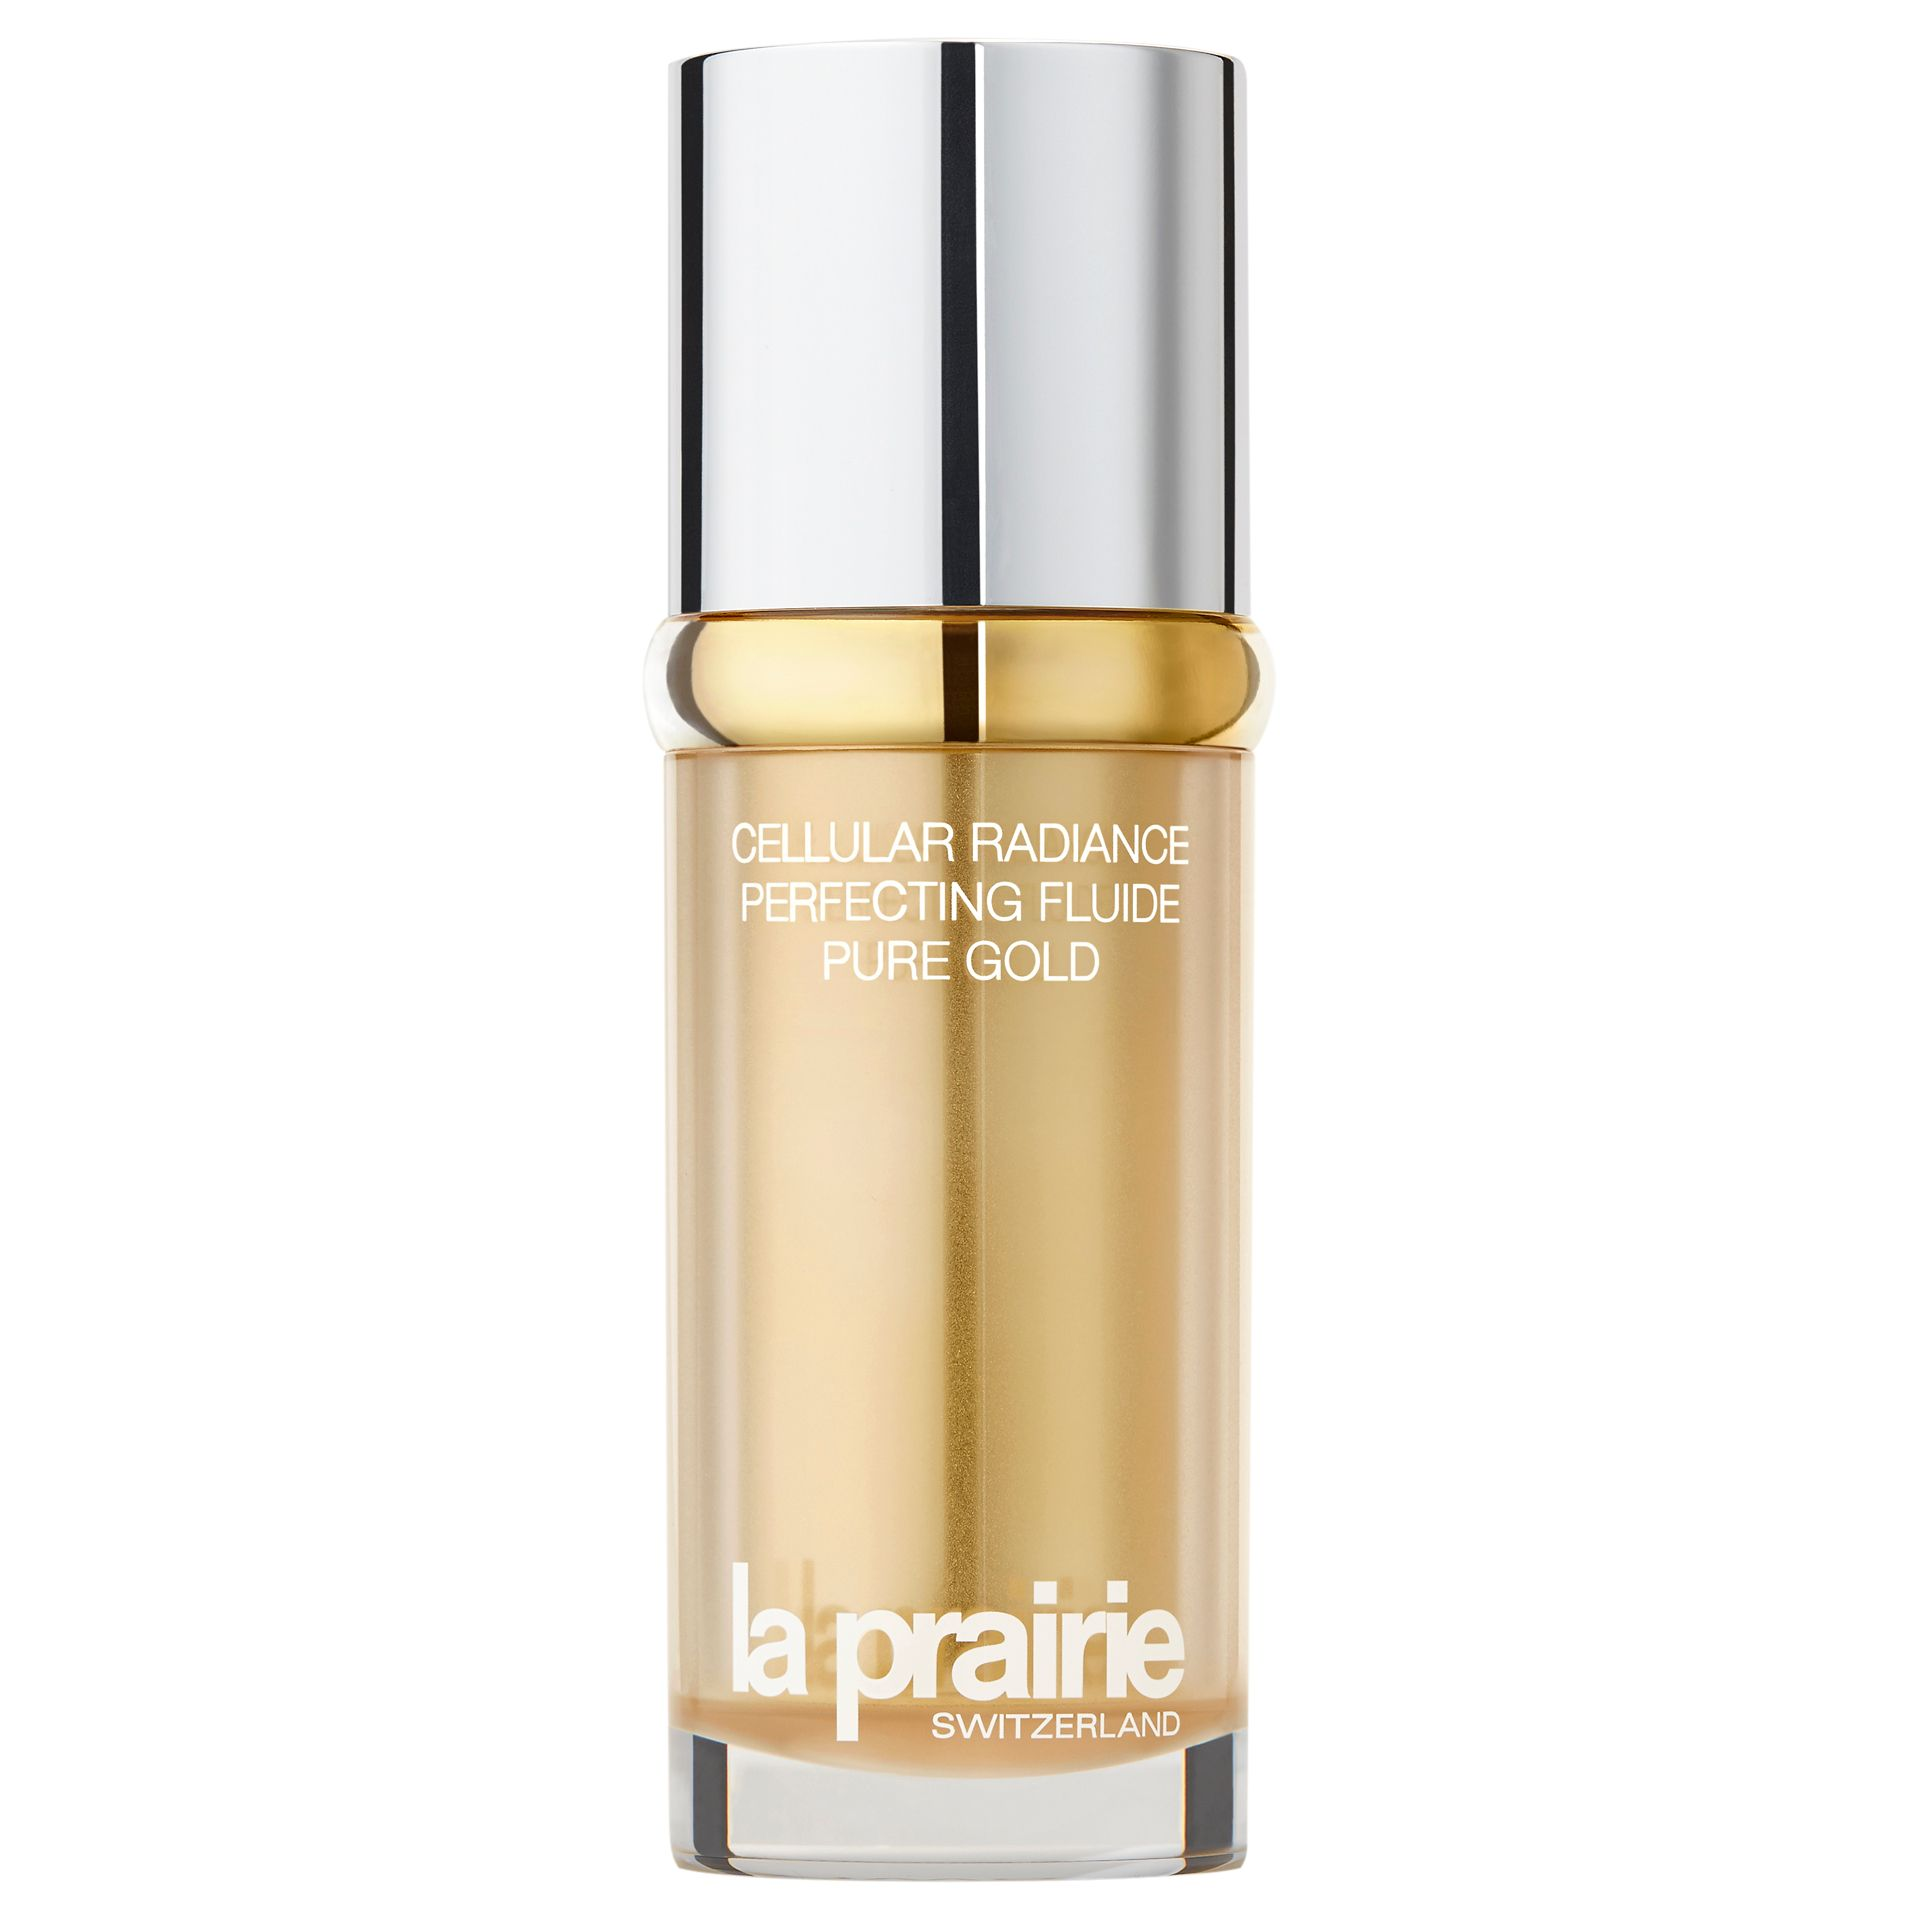 La Prairie La Prairie Cellular Radiance Perfecting Fluide Pure Gold, 40ml